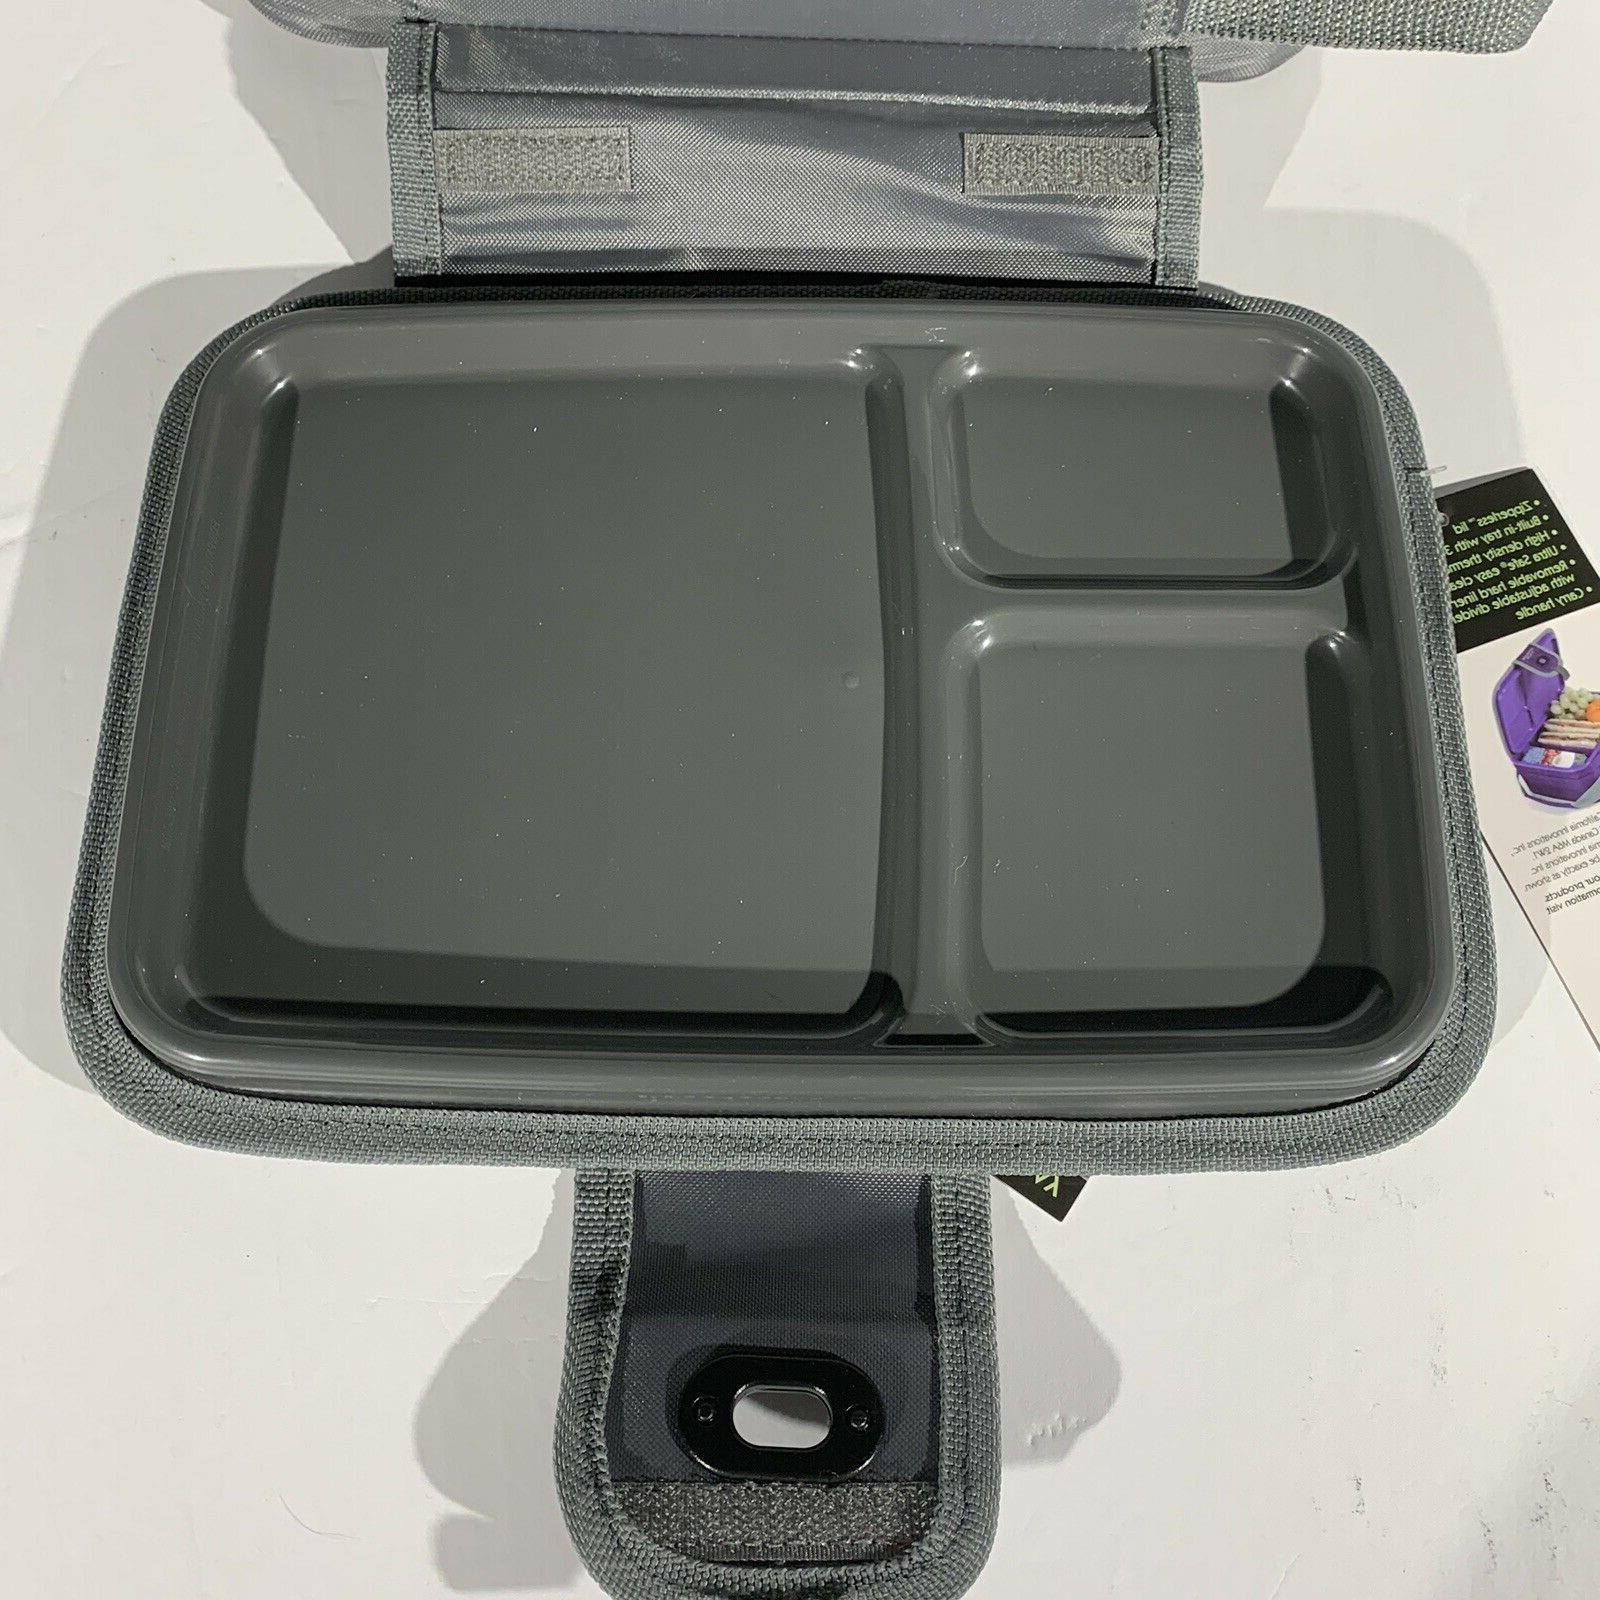 Arctic Zone Insulated Lunch Box Lid Built In School